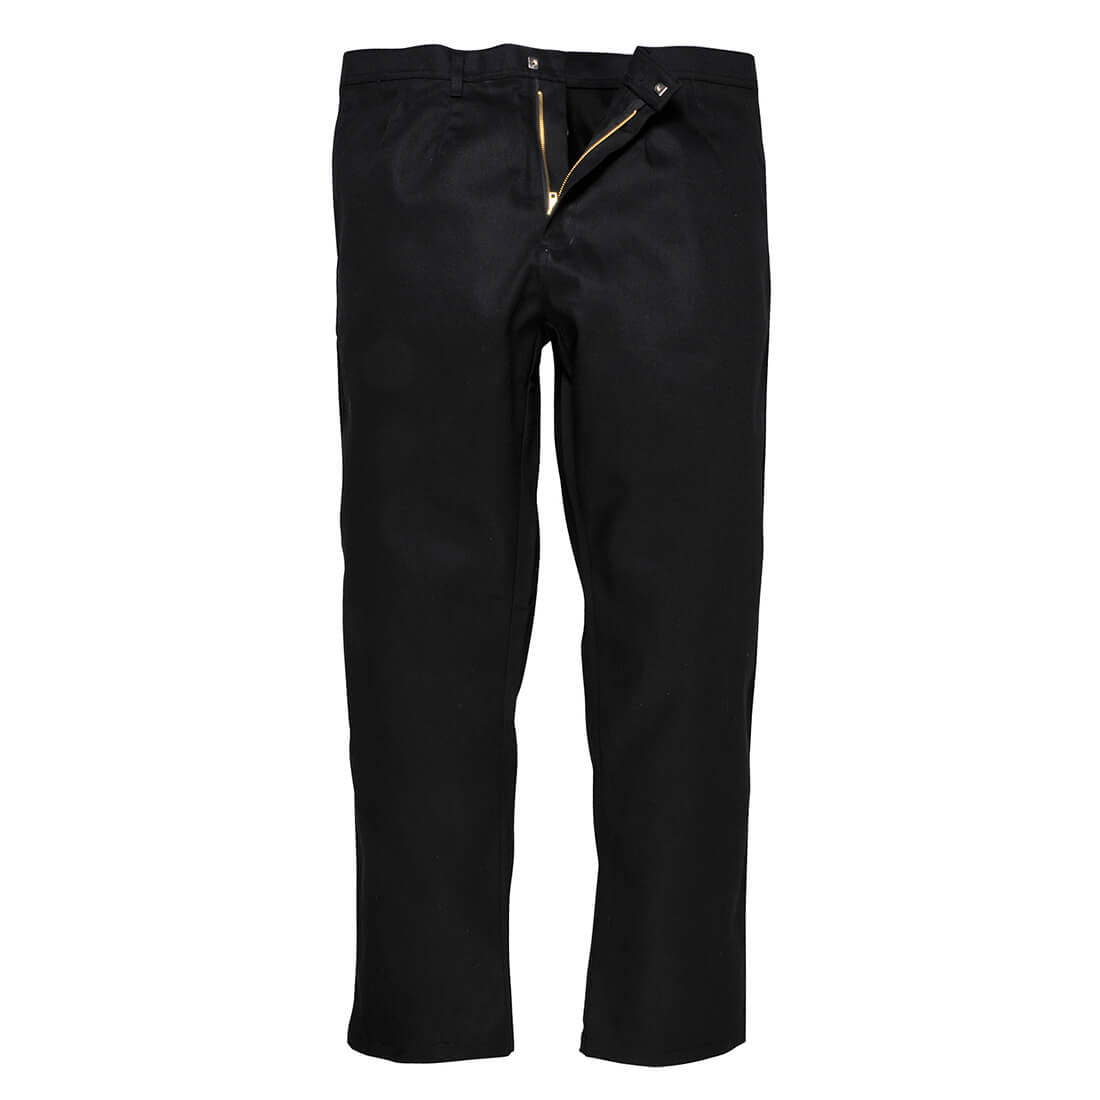 """Image of Biz Weld Mens Flame Resistant Trousers Black Extra Large 34"""""""